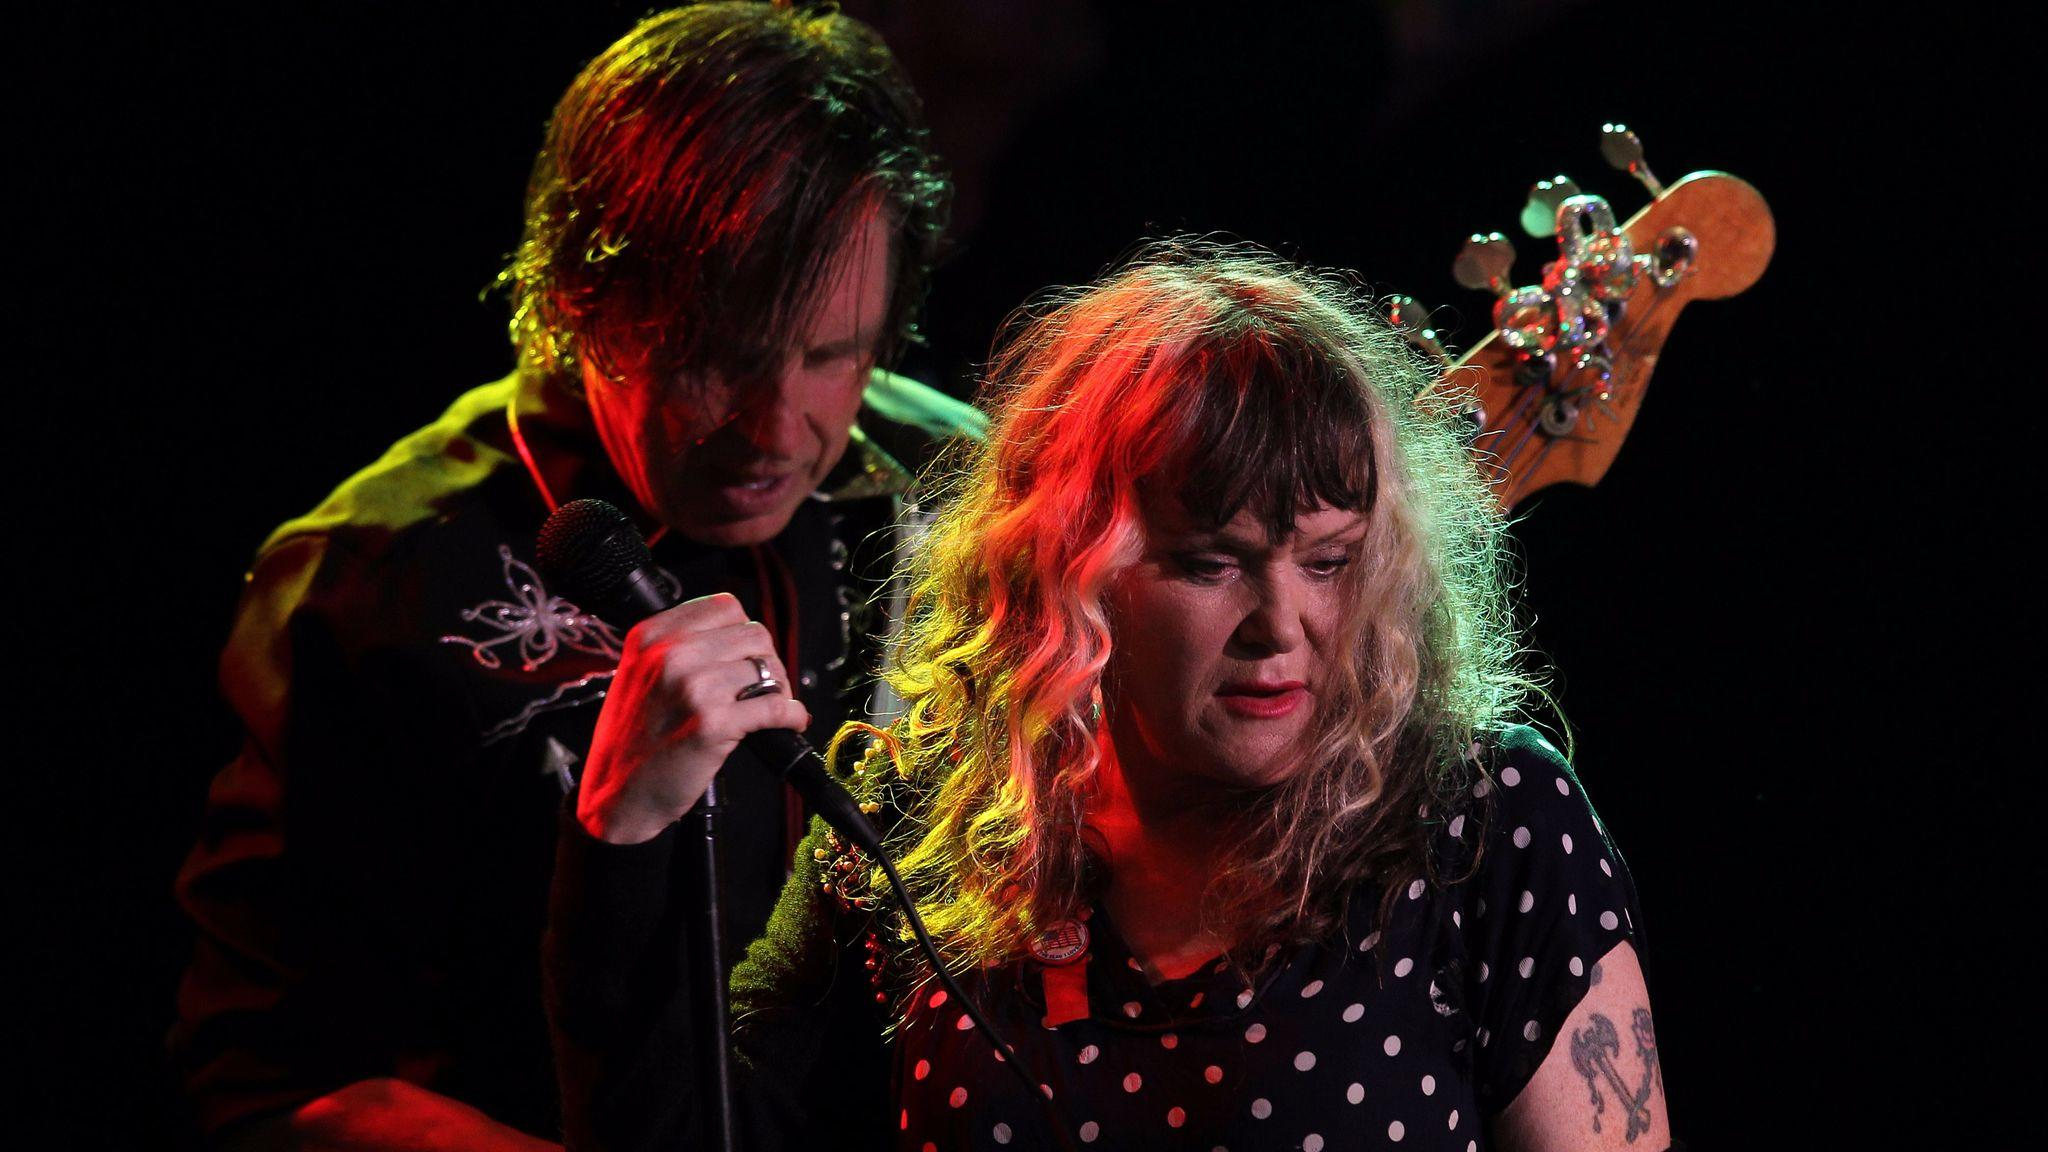 John Doe, left, and Exene Cervenka will bring X to L.A.'s Pershing Square for a free show Saturday. (Rick Loomis / Los Angeles Times)